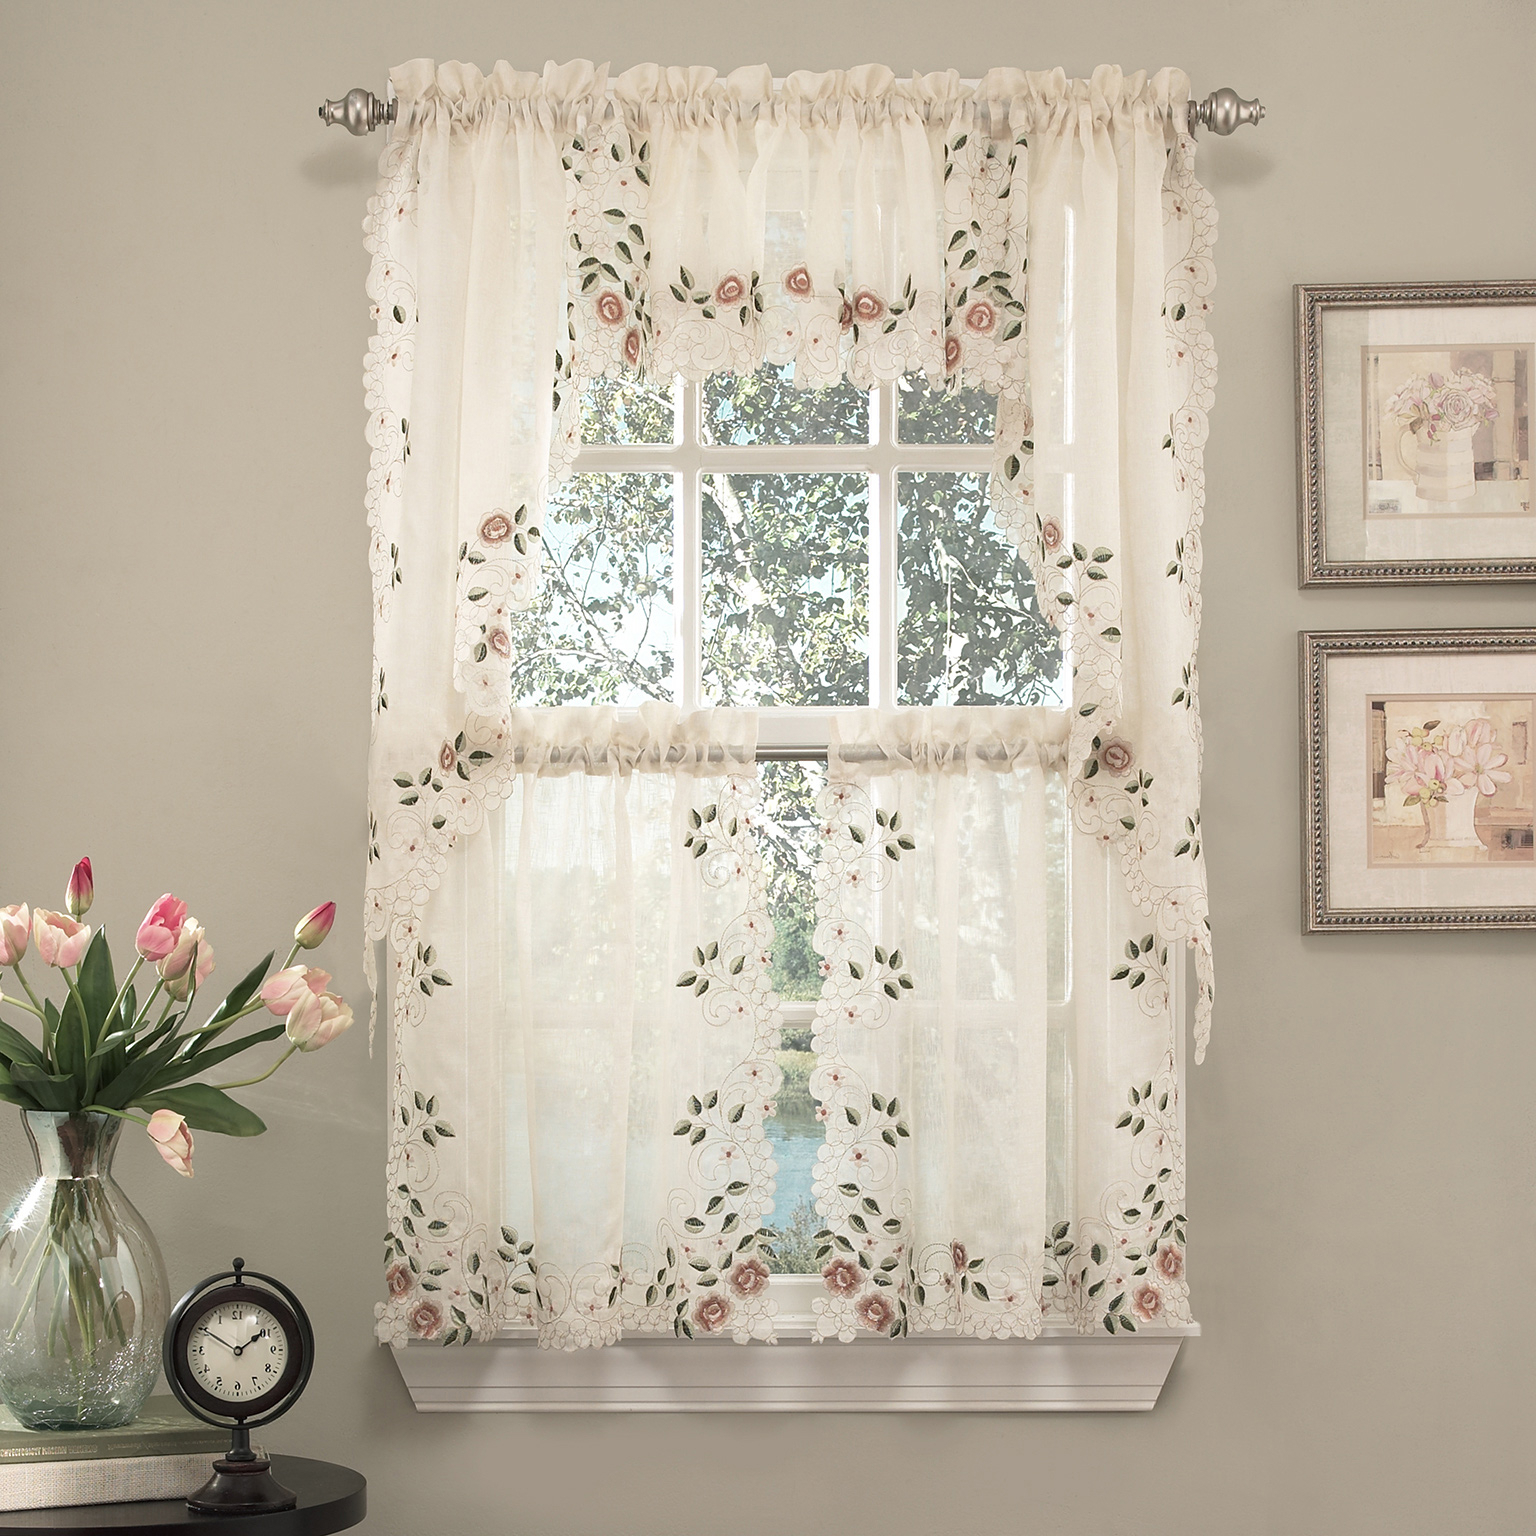 "Recent Floral Embroidered Sheer Kitchen Curtain Tiers, Swags And Valances Pertaining To Details About Rosemary Floral Embroidered Semi Sheer Kitchen Curtain 36"" Tier Swag Valance Set (View 2 of 20)"